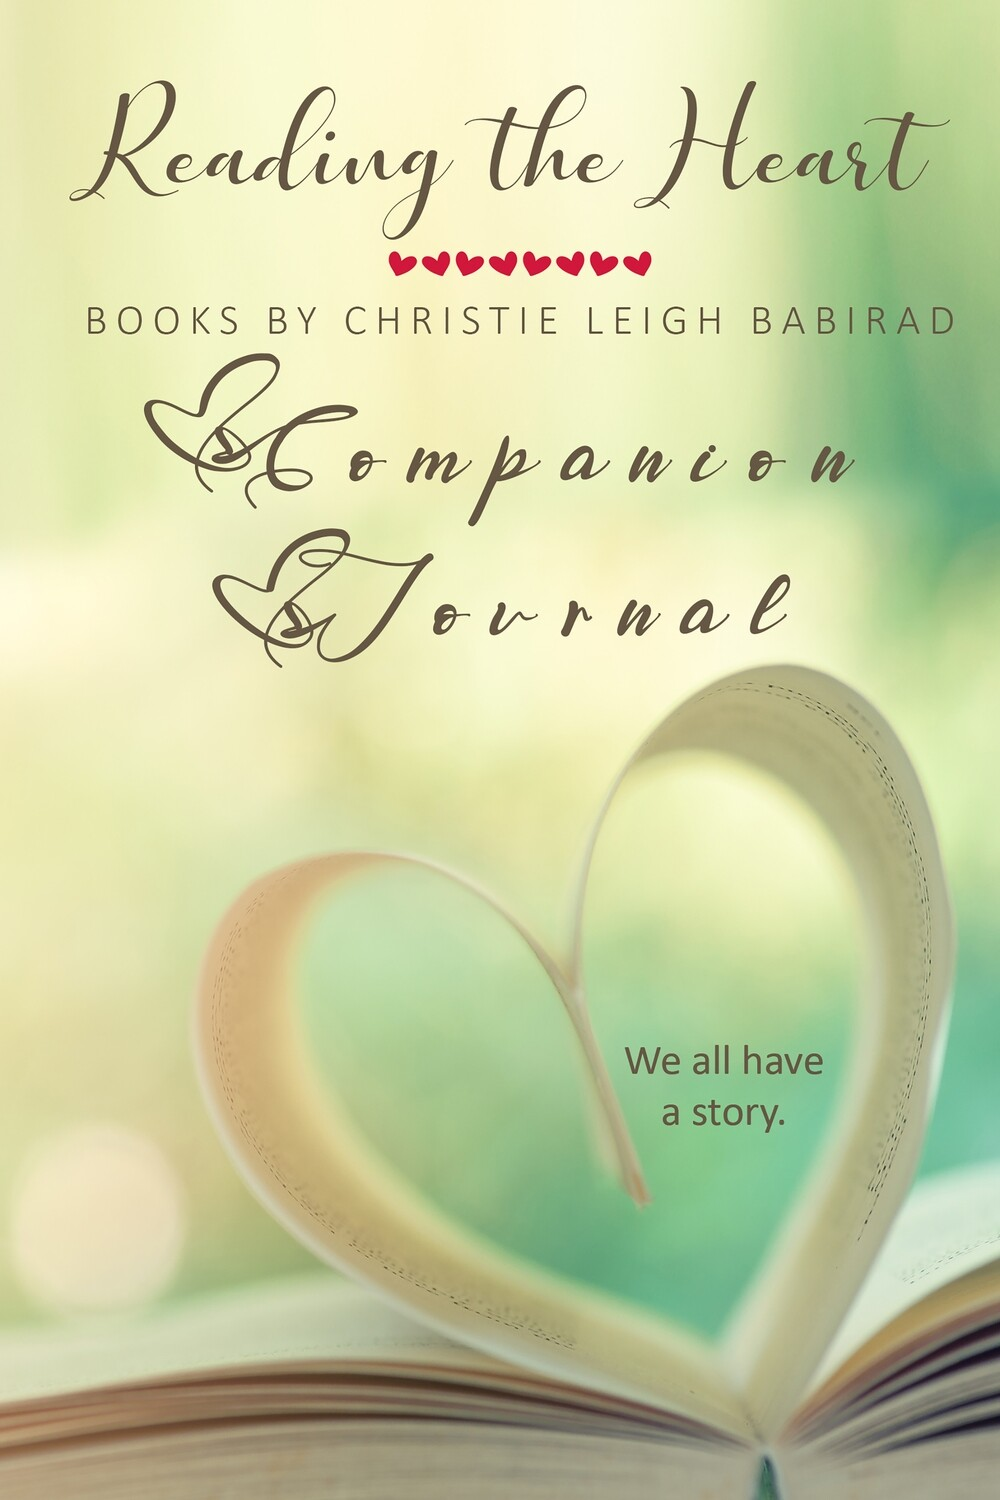 Reading the Heart (Books by Christie Leigh Babirad Companion Journal) - eBook / Printable Journal